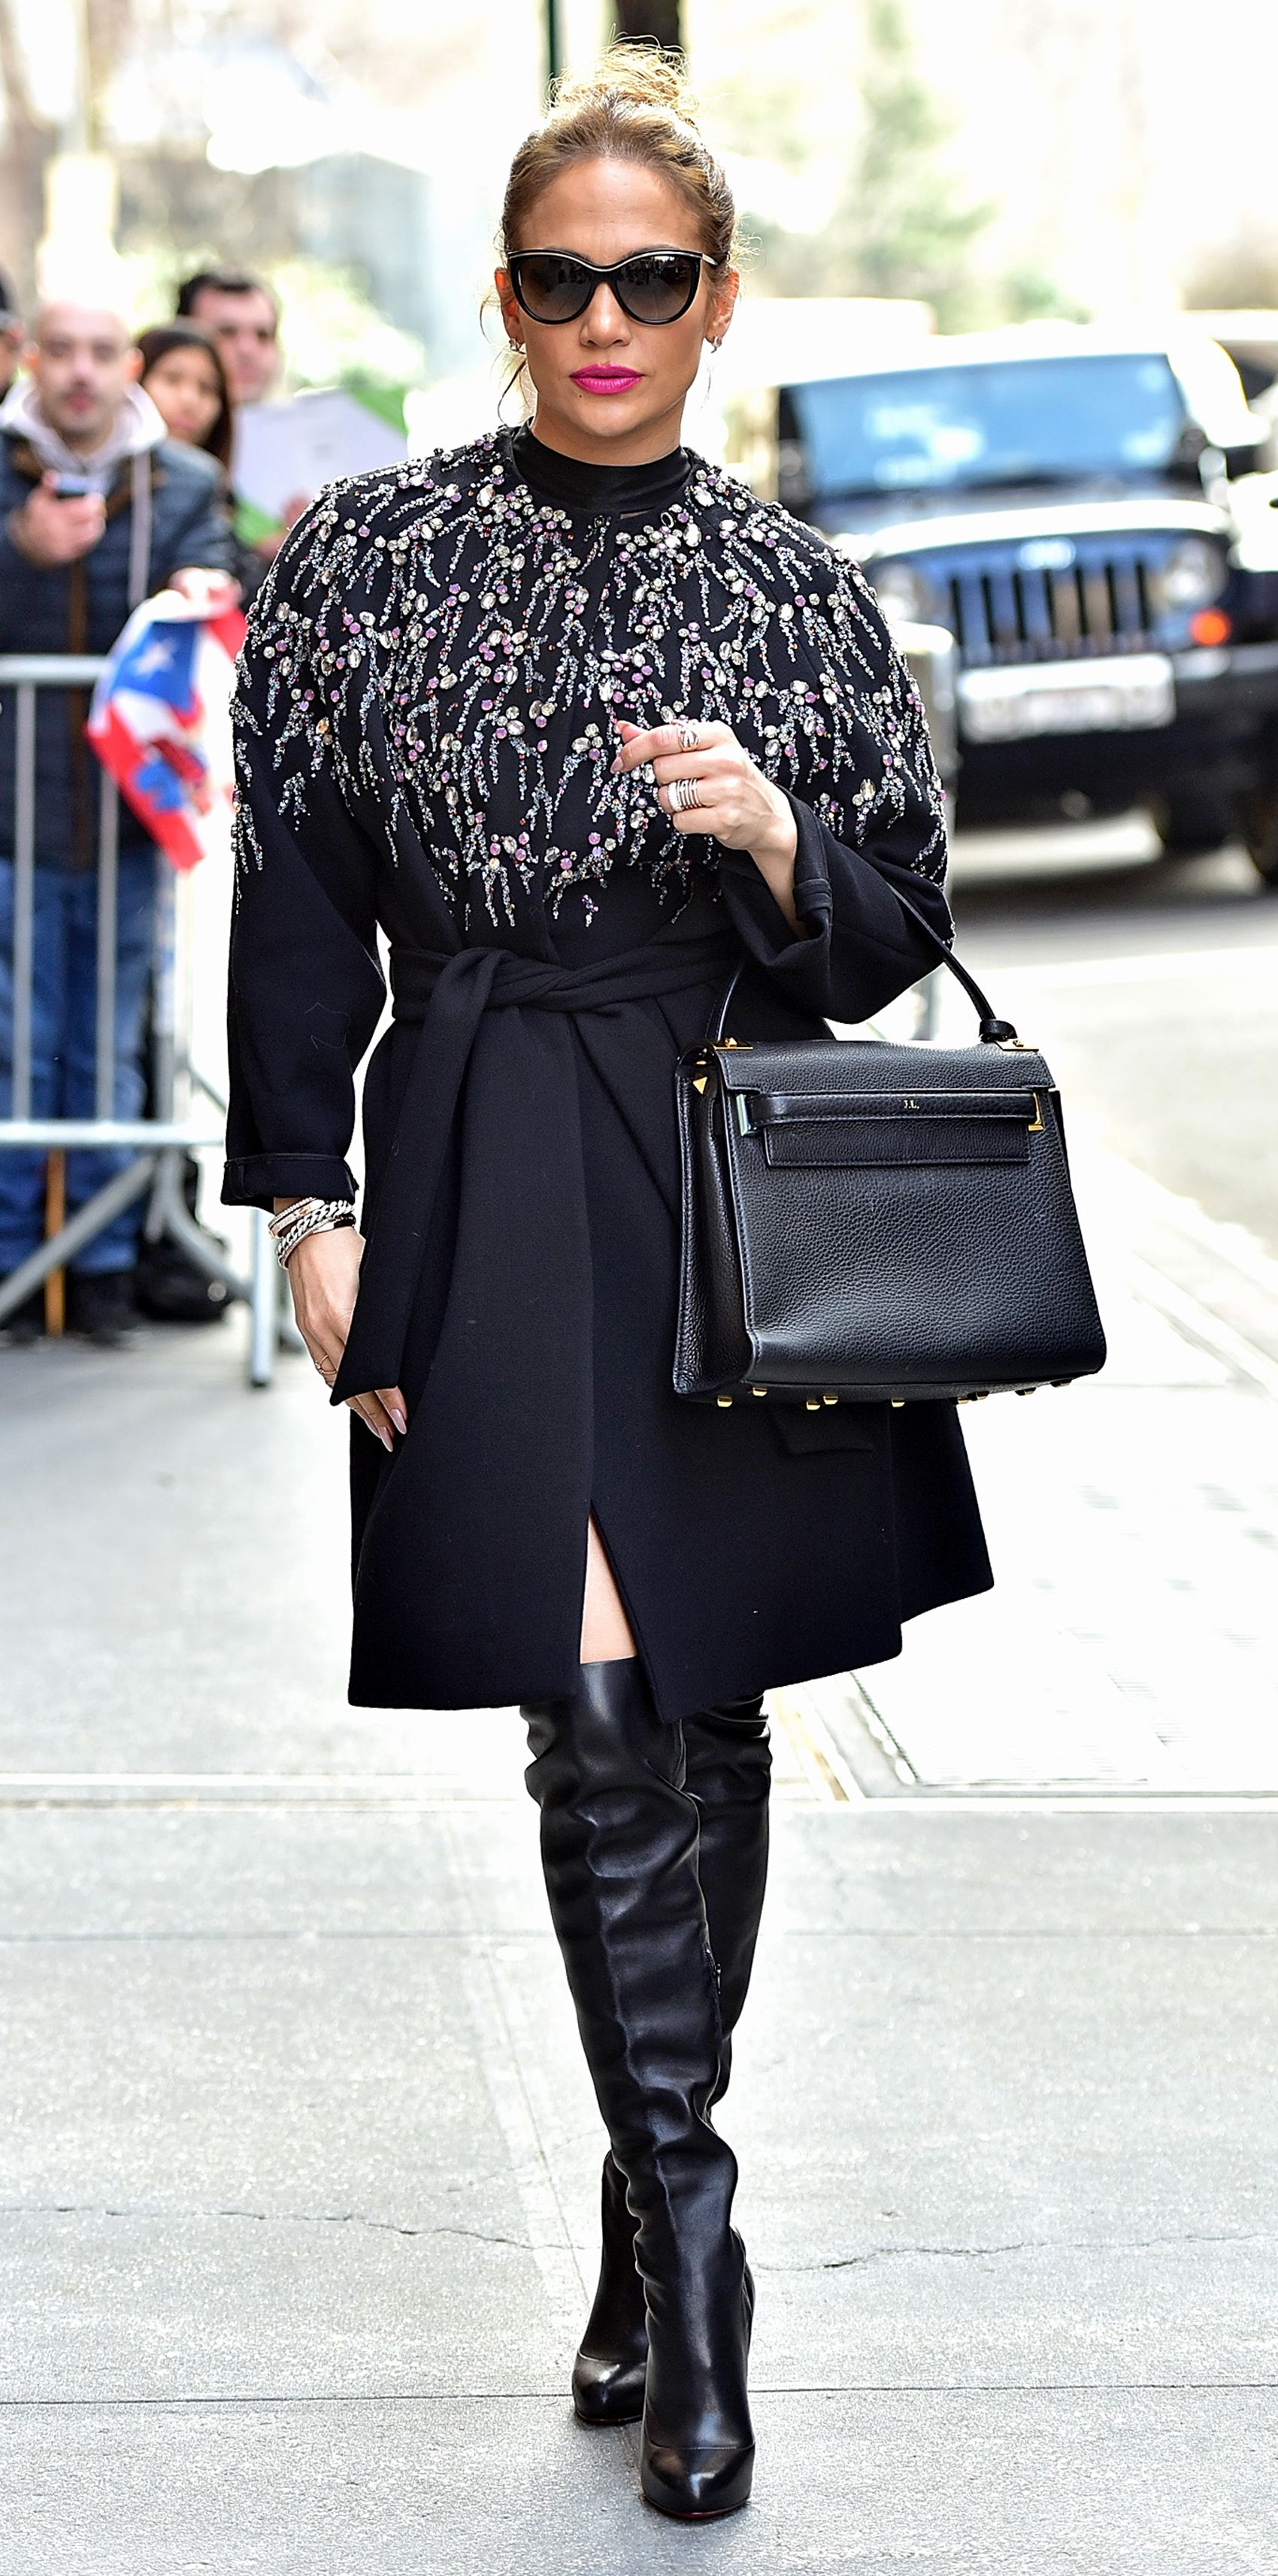 a5bf79851f55 Jennifer Lopez s Most Envy-Inducing Street Style Looks - March 2